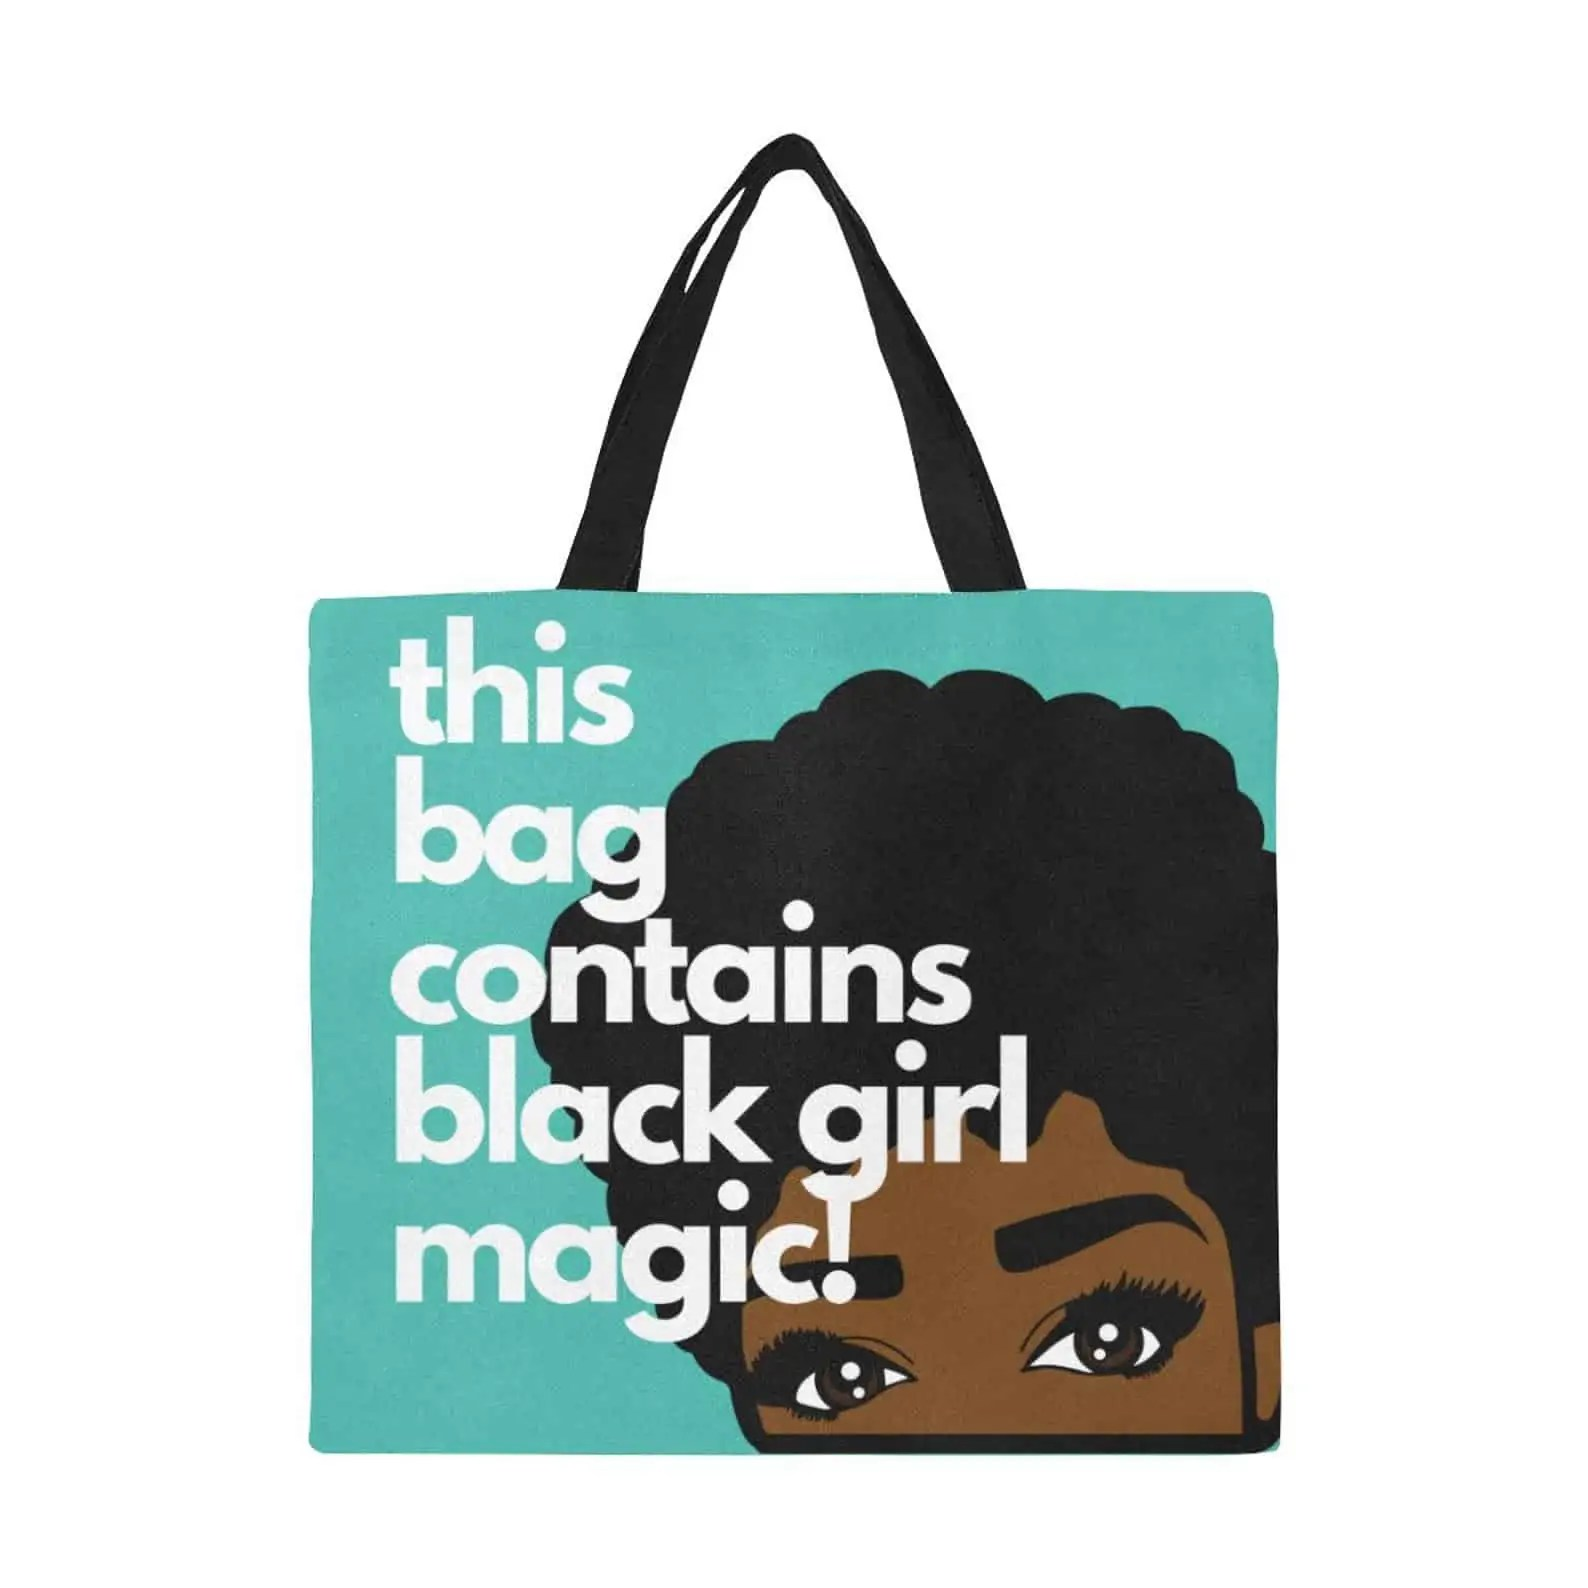 M&K Creative Designs Black Owned Canadian Etsy Shop | Afrocentric Products Black Girl Magic Bag